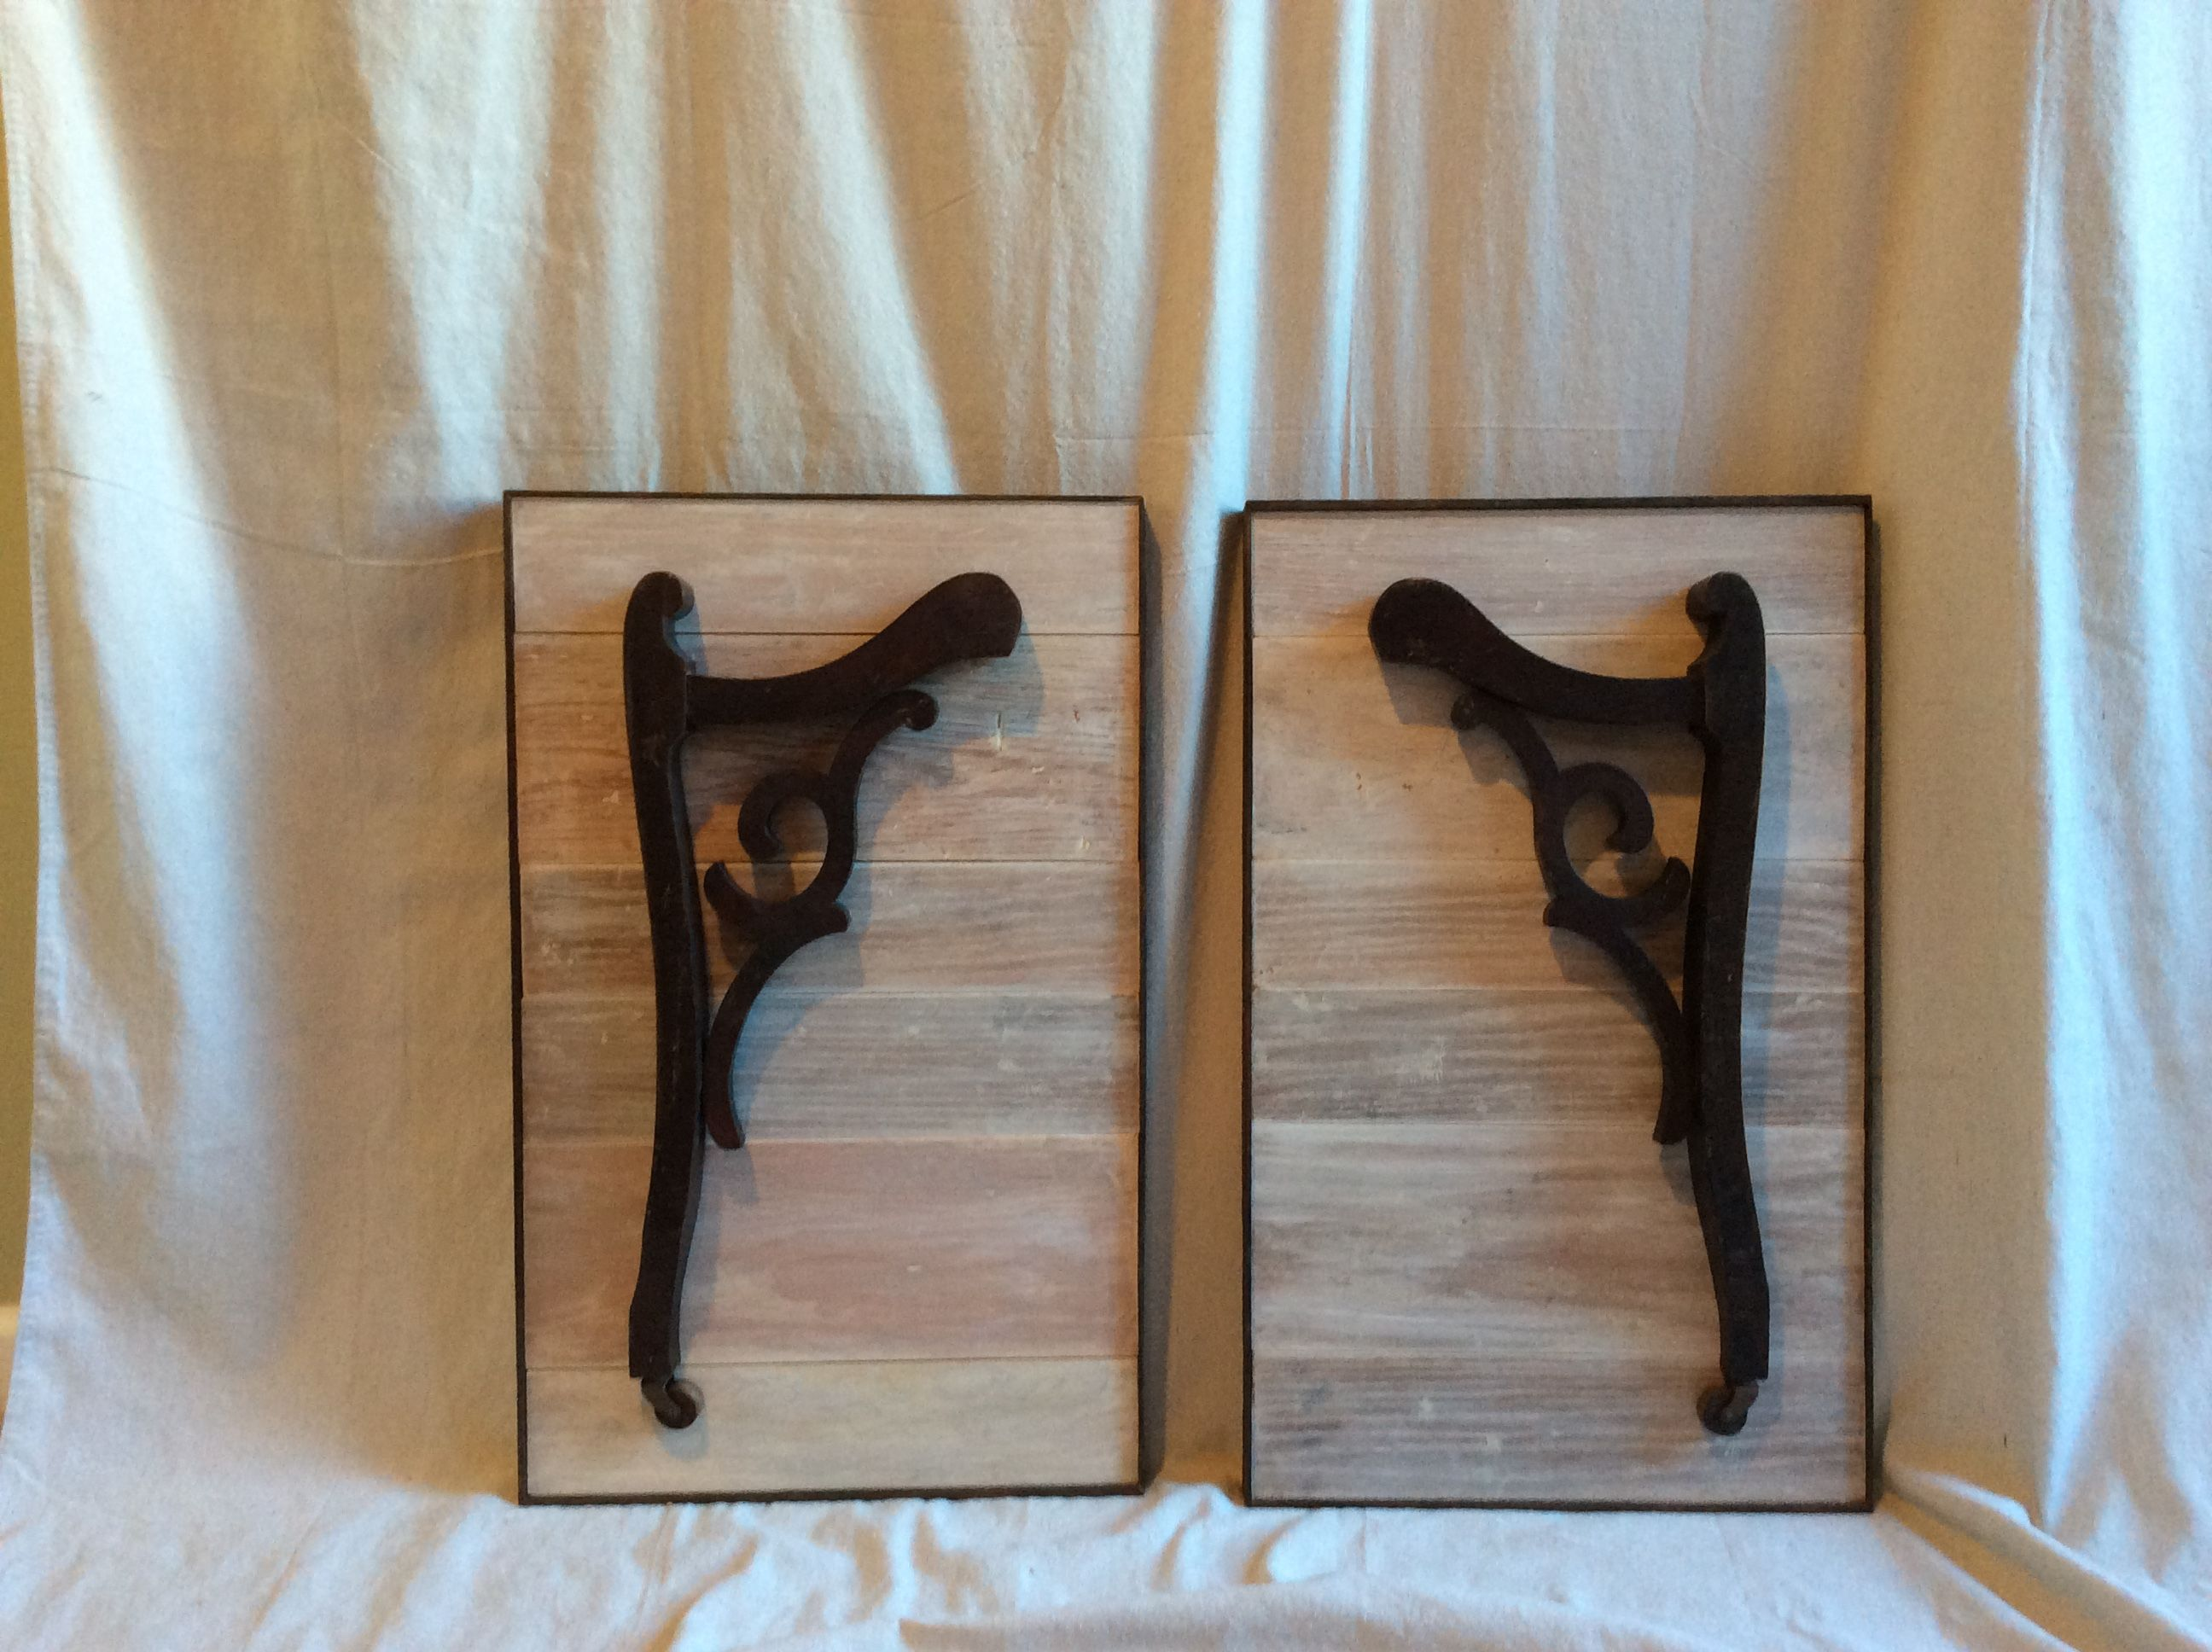 Upcycled chair arms and wooden door frame pcs turned into wall art